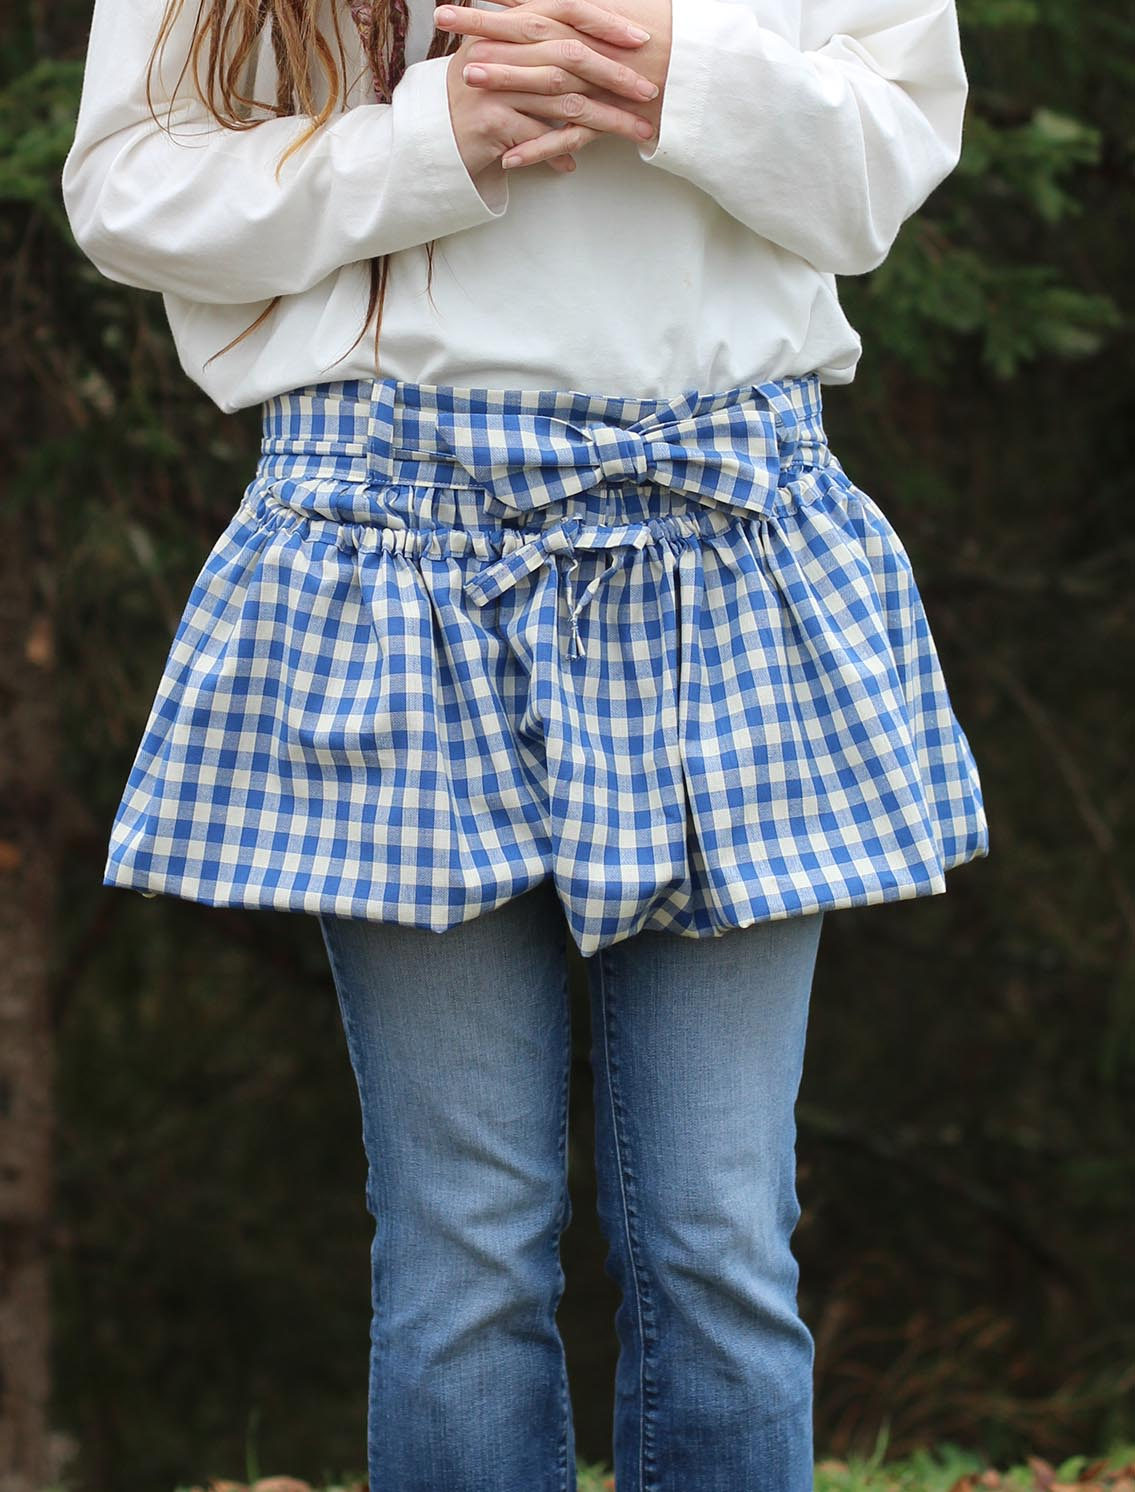 Gathering Apron in Blue and White Plaid 100% Cotton Homespun in Reg and Plus Size